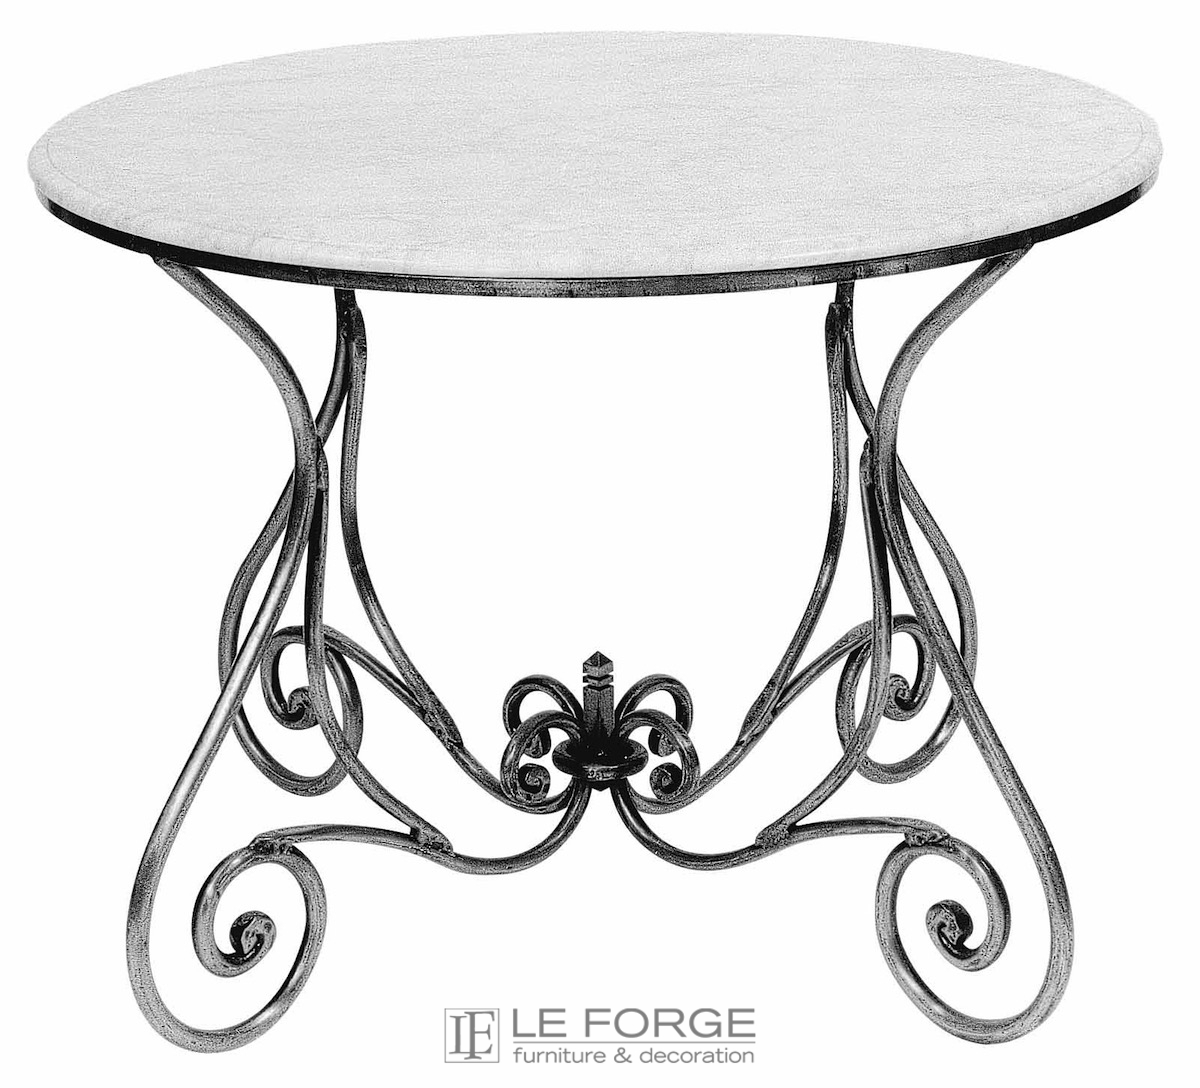 Tables Versailles Round Dining Table Base One Size Base For All Top Sizes Hand Forged Steel